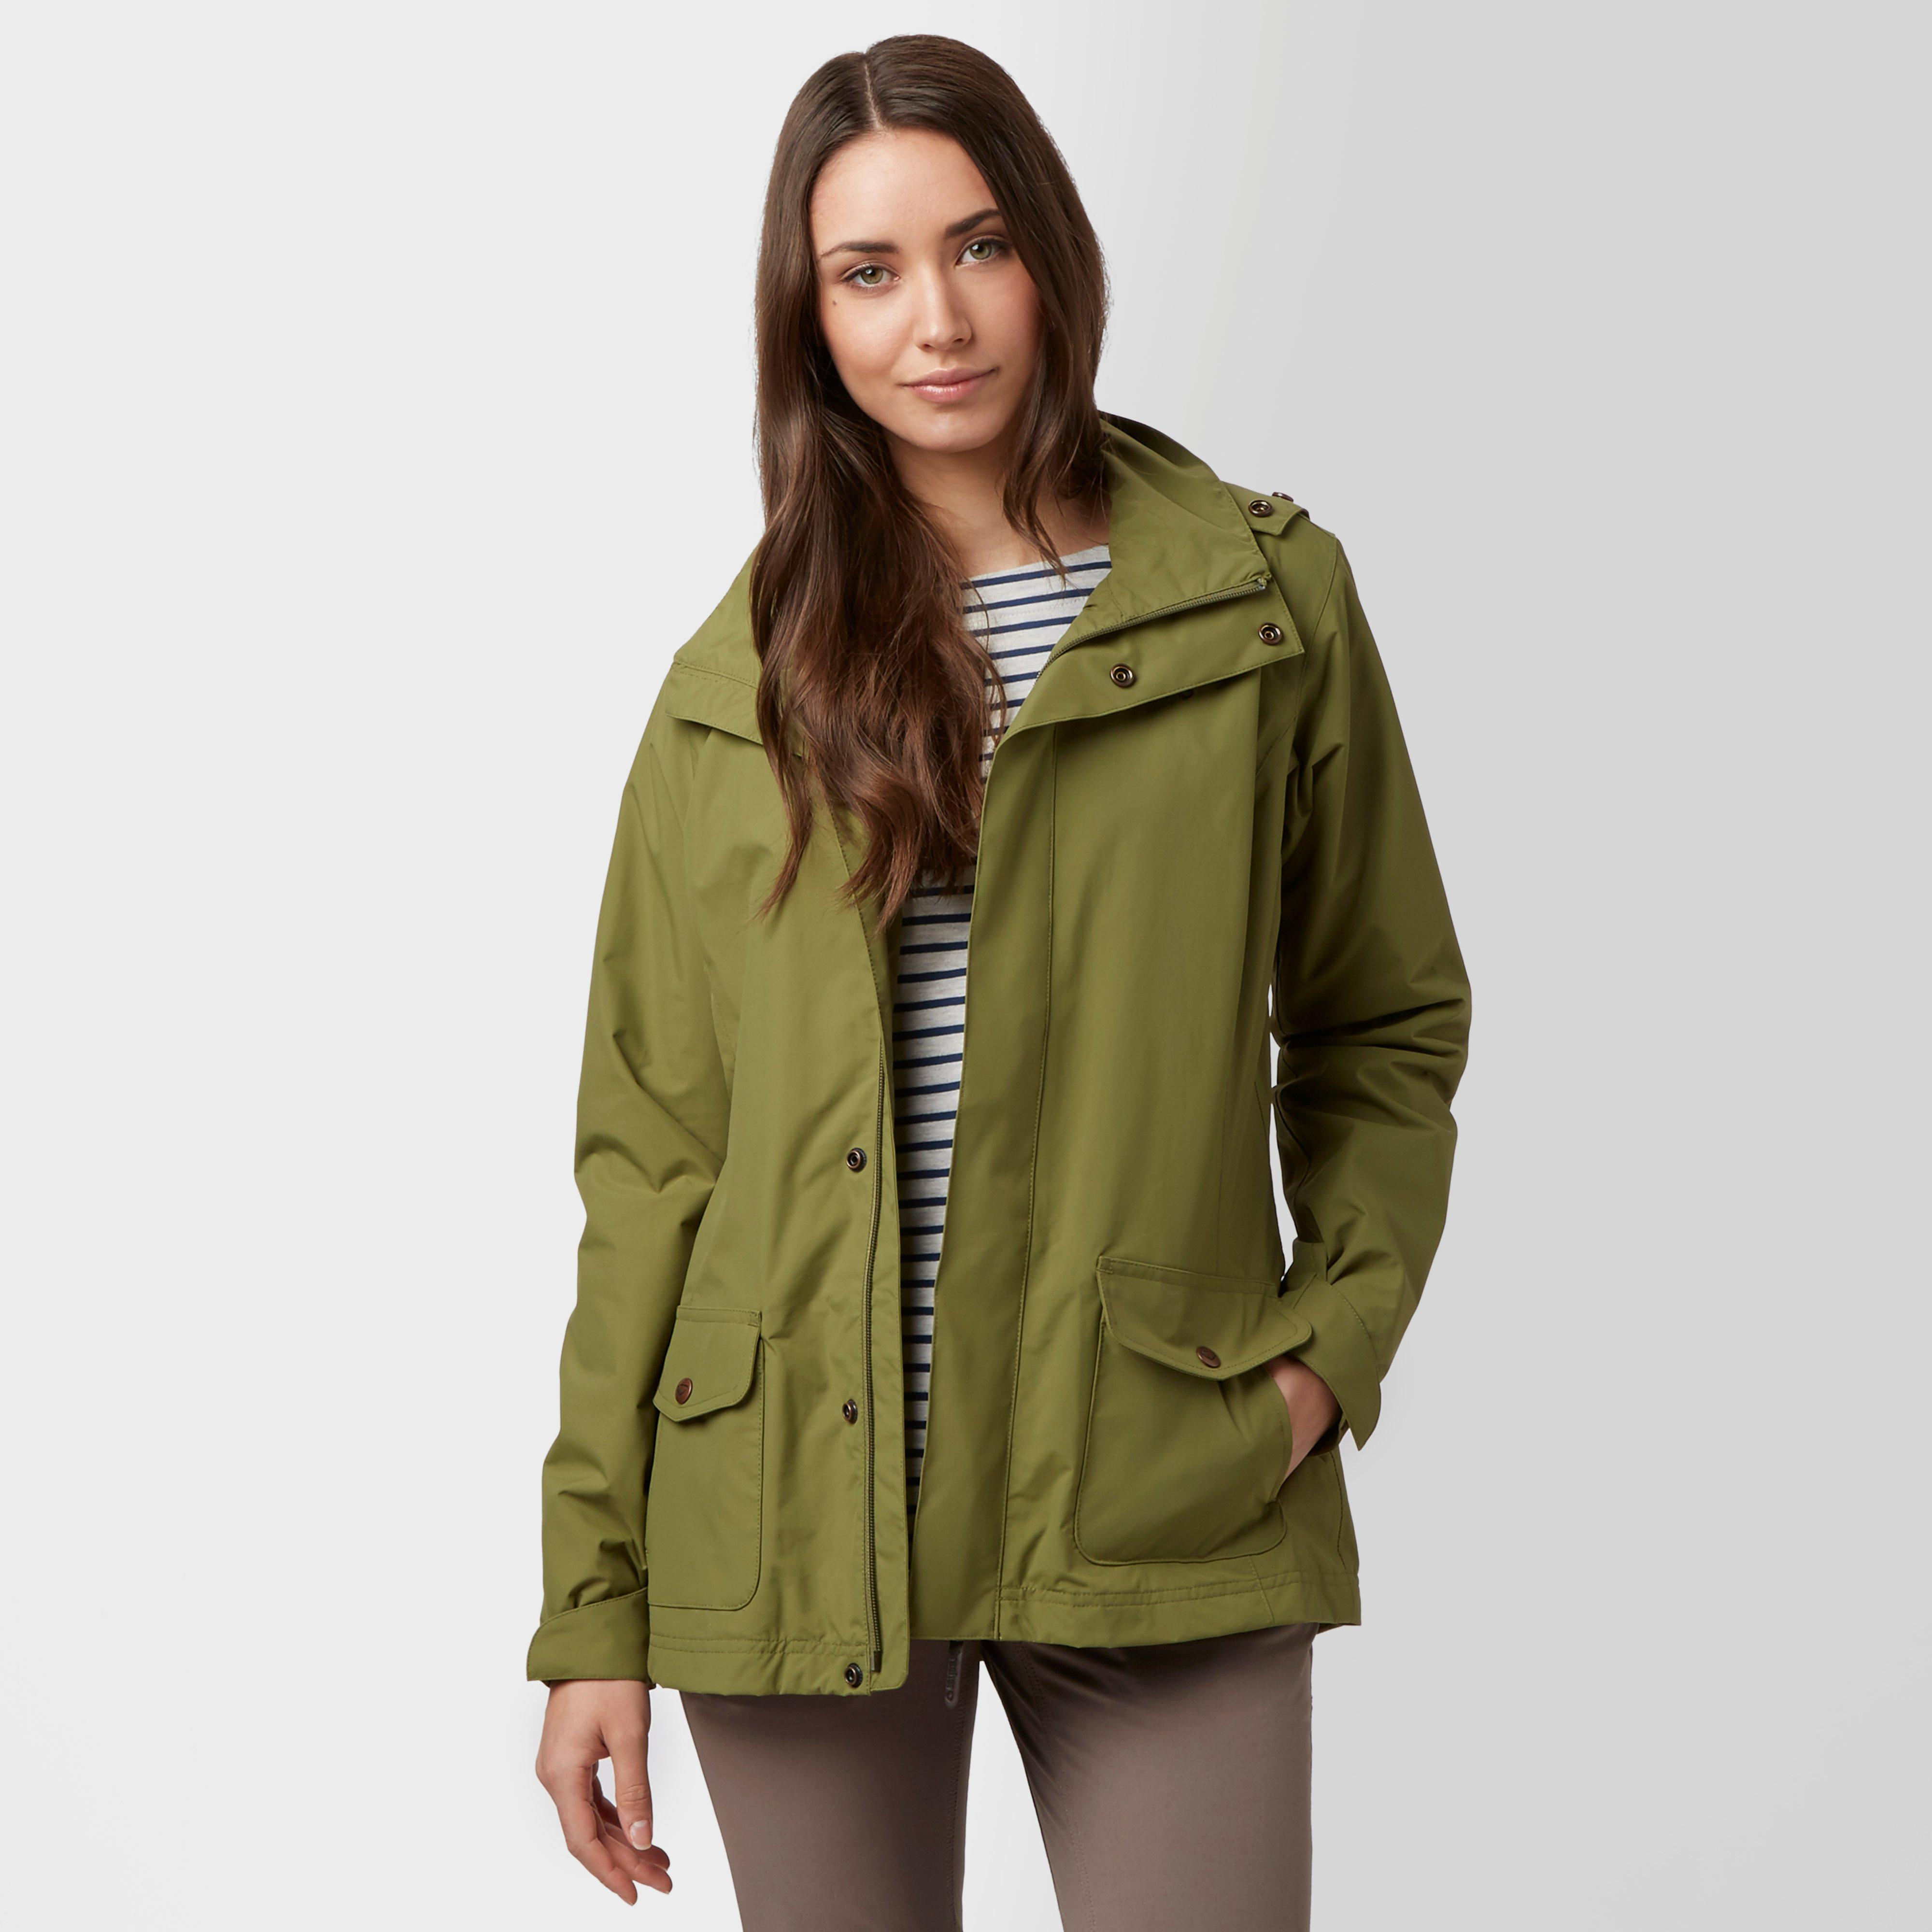 Brasher Womens Windermere Waterproof Jacket Khaki